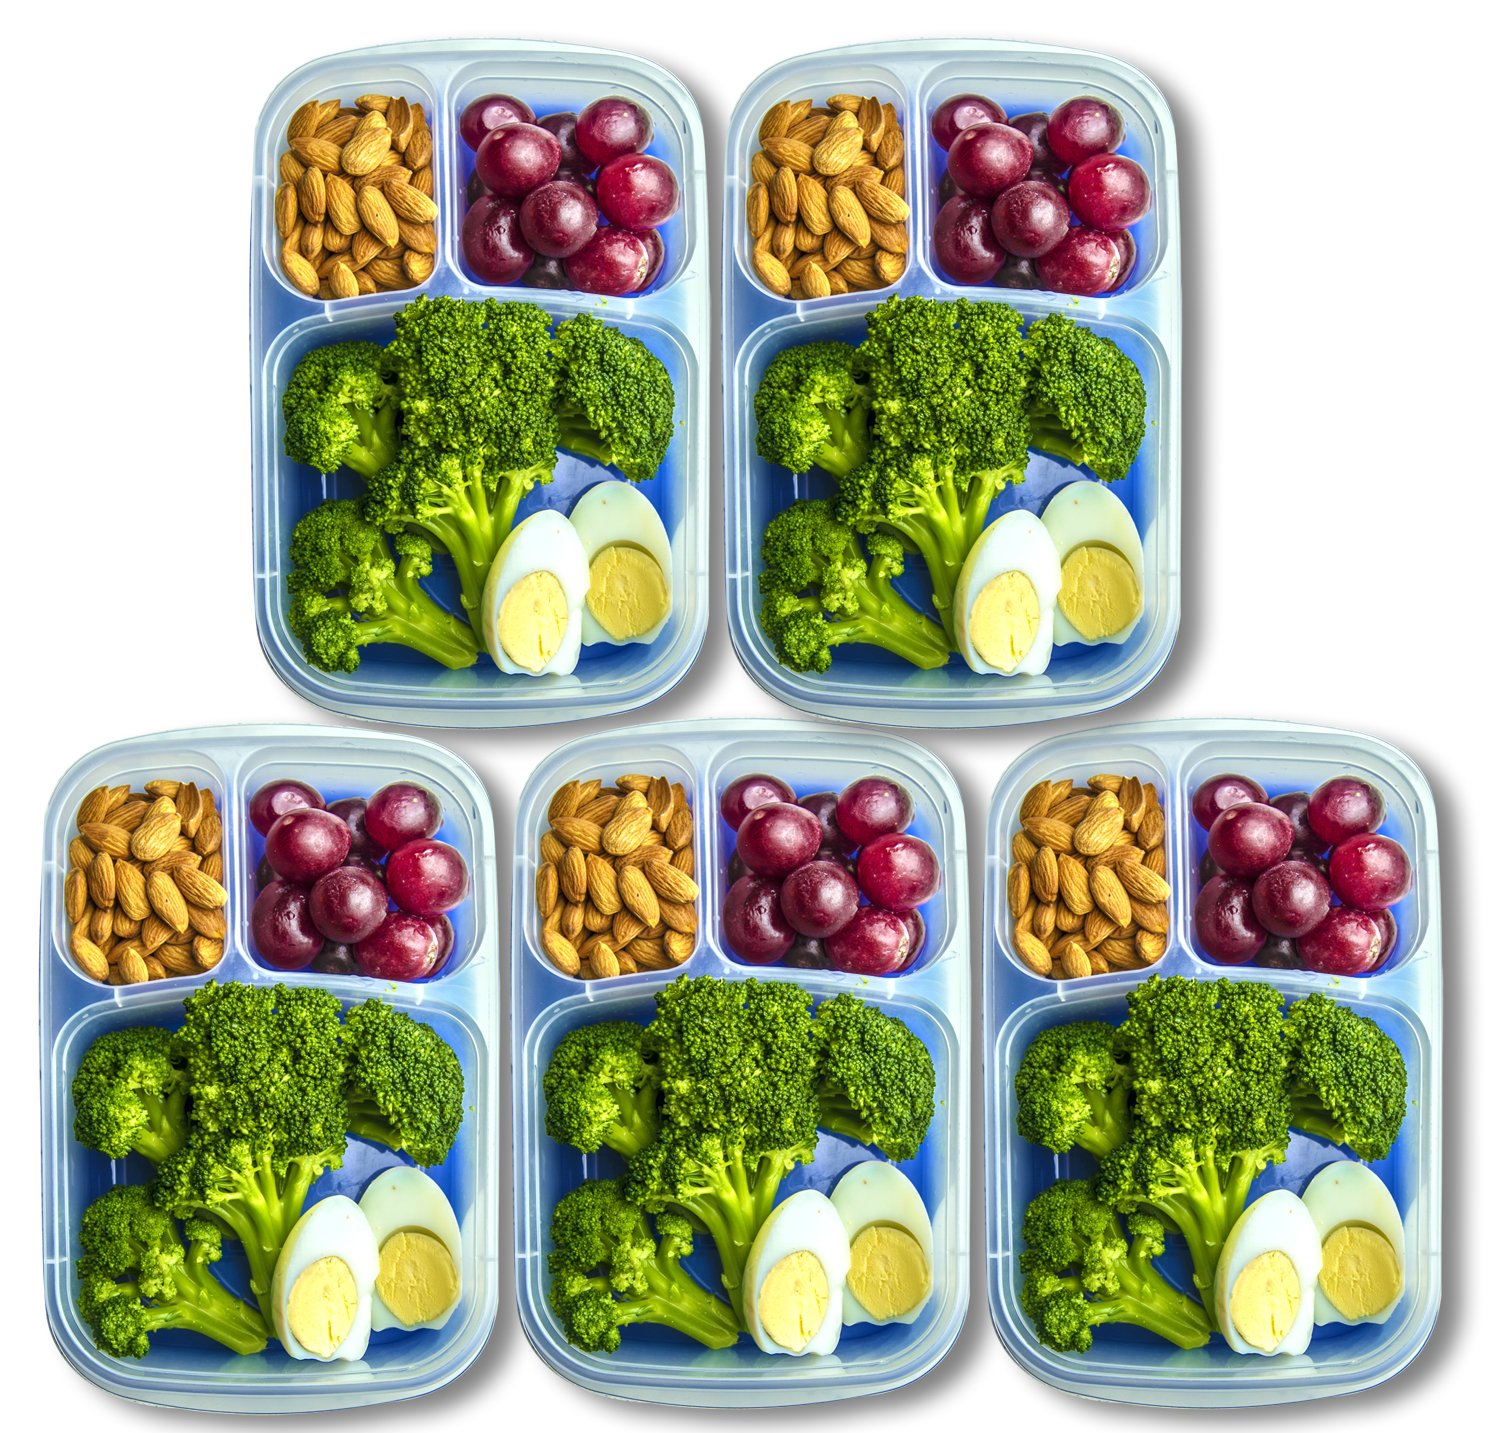 Amazon Orgalif Lunch Container For Kids 3 Comparment Reusable Plastic Bento Box Set Of 5 Kitchen Dining